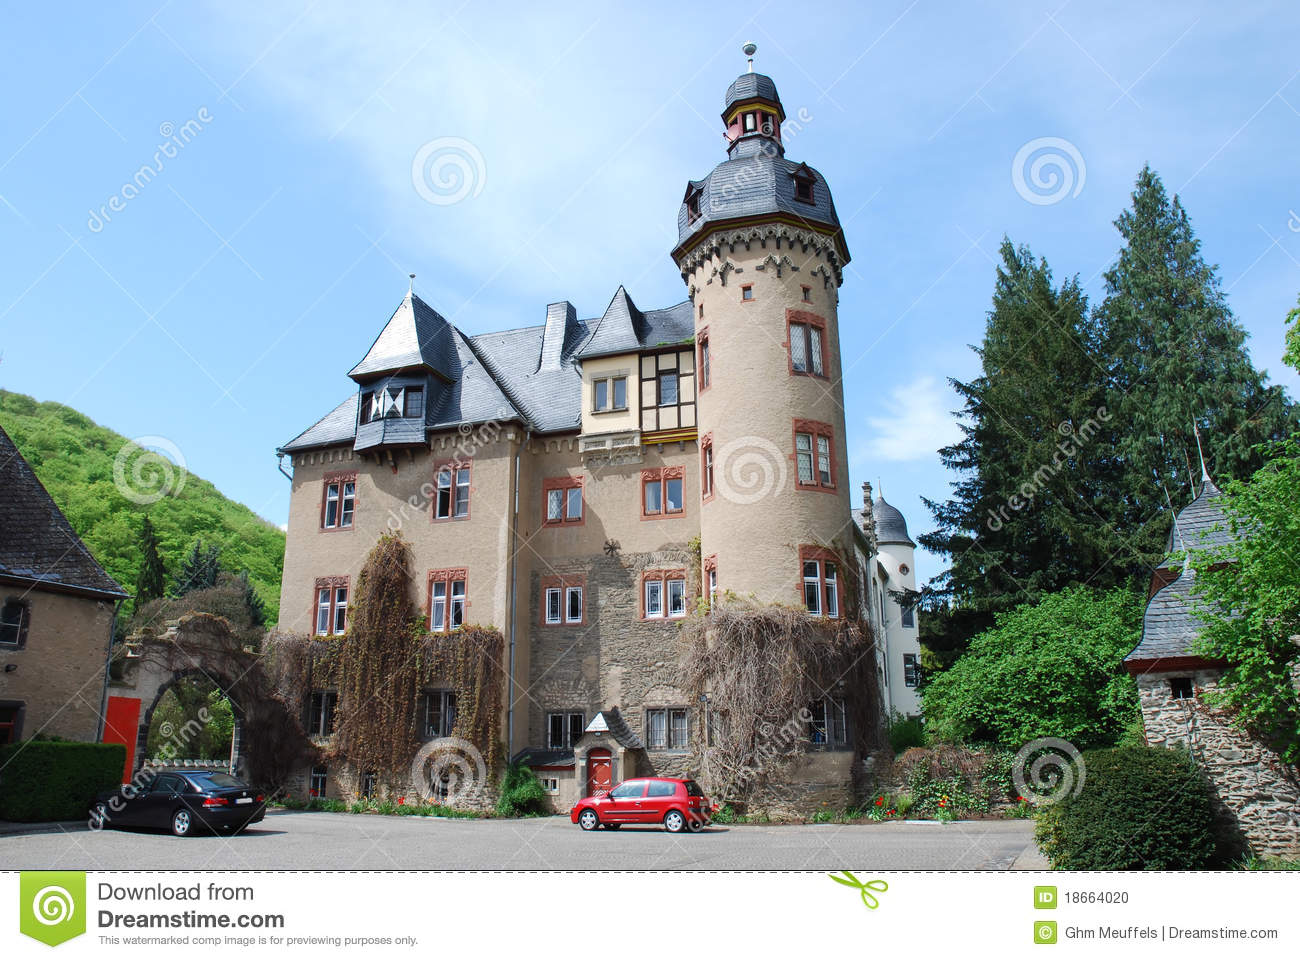 Andernach Germany  city photos : Burg Namedy A Castle, Andernach, Germany Stock Photo Image: 18664020